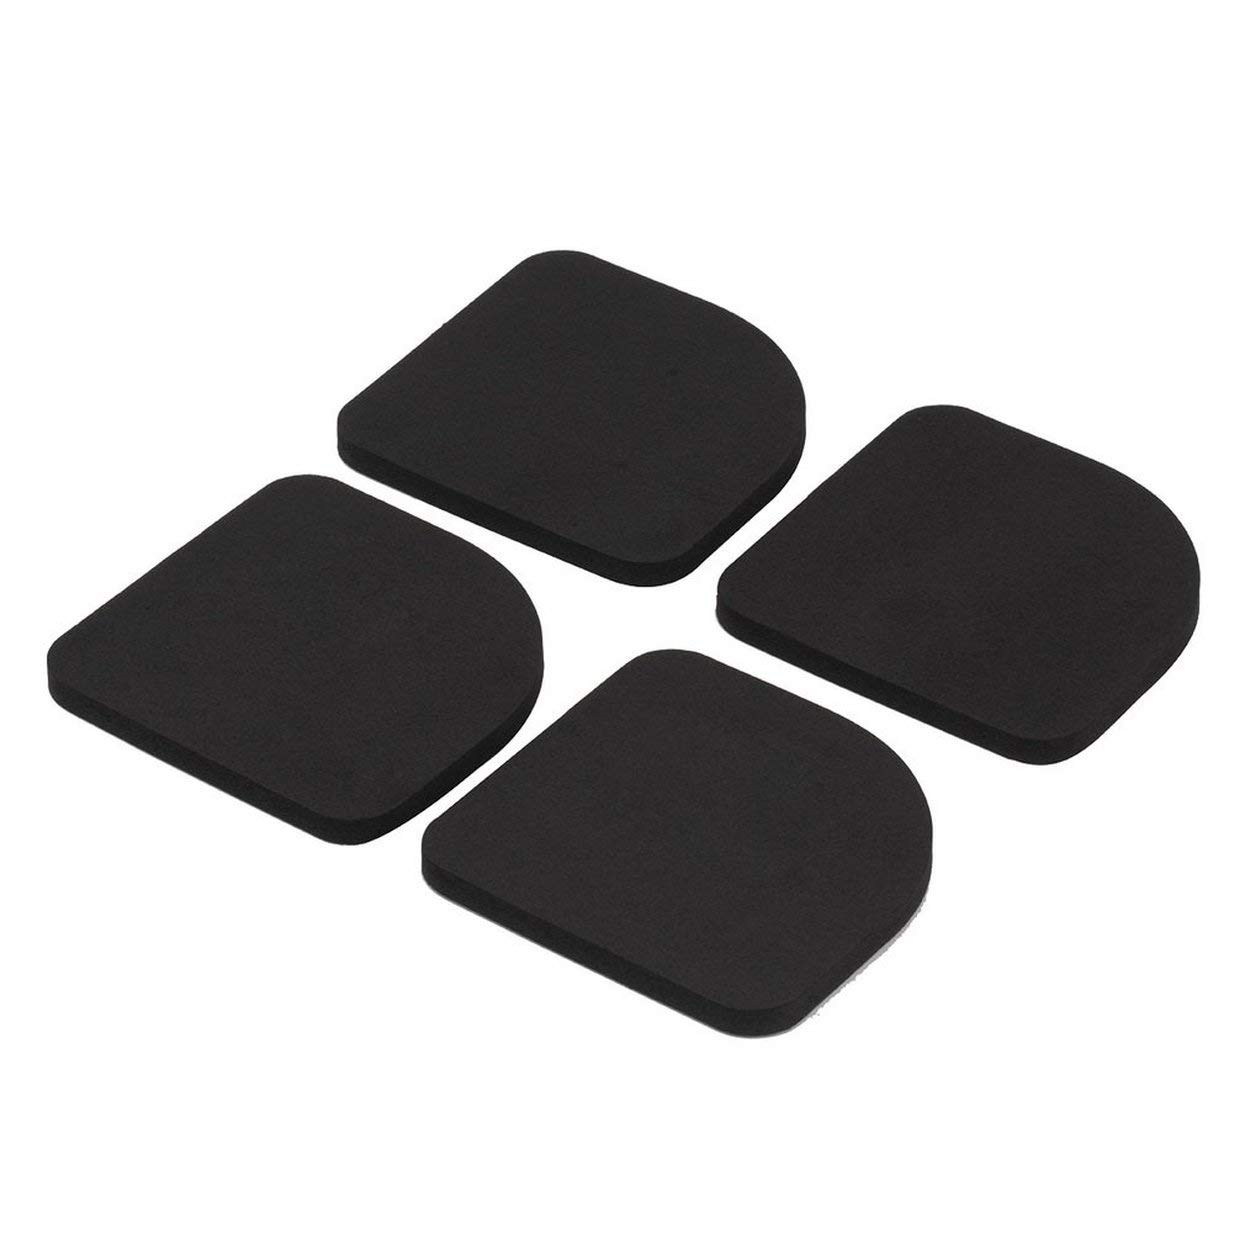 4 pcs Washer Shock Slip Mats Reducing Refrigerator Anti-vibration Noise Pad Washing Machine Shock Proof Mat YQL1010-70